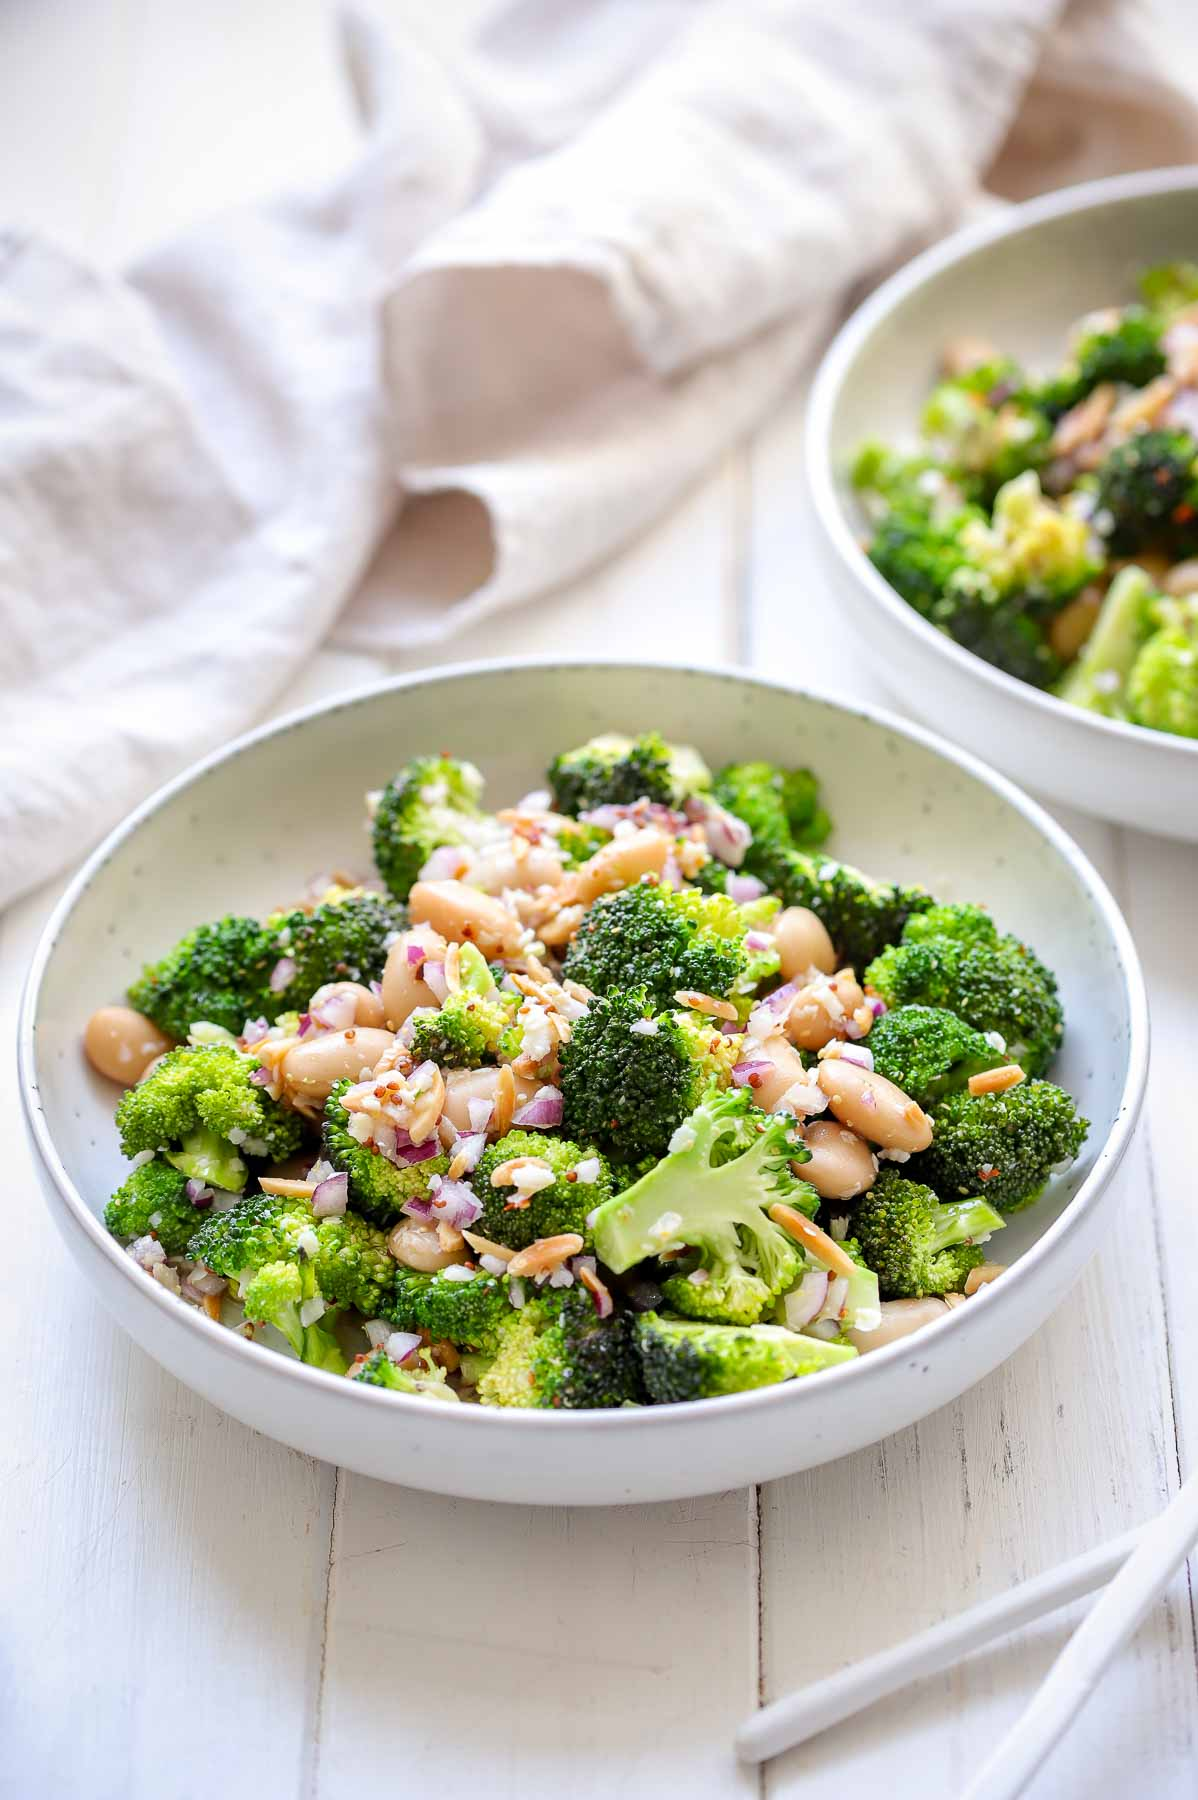 Super Easy Broccoli Salad with parmesan, almonds, butter beans